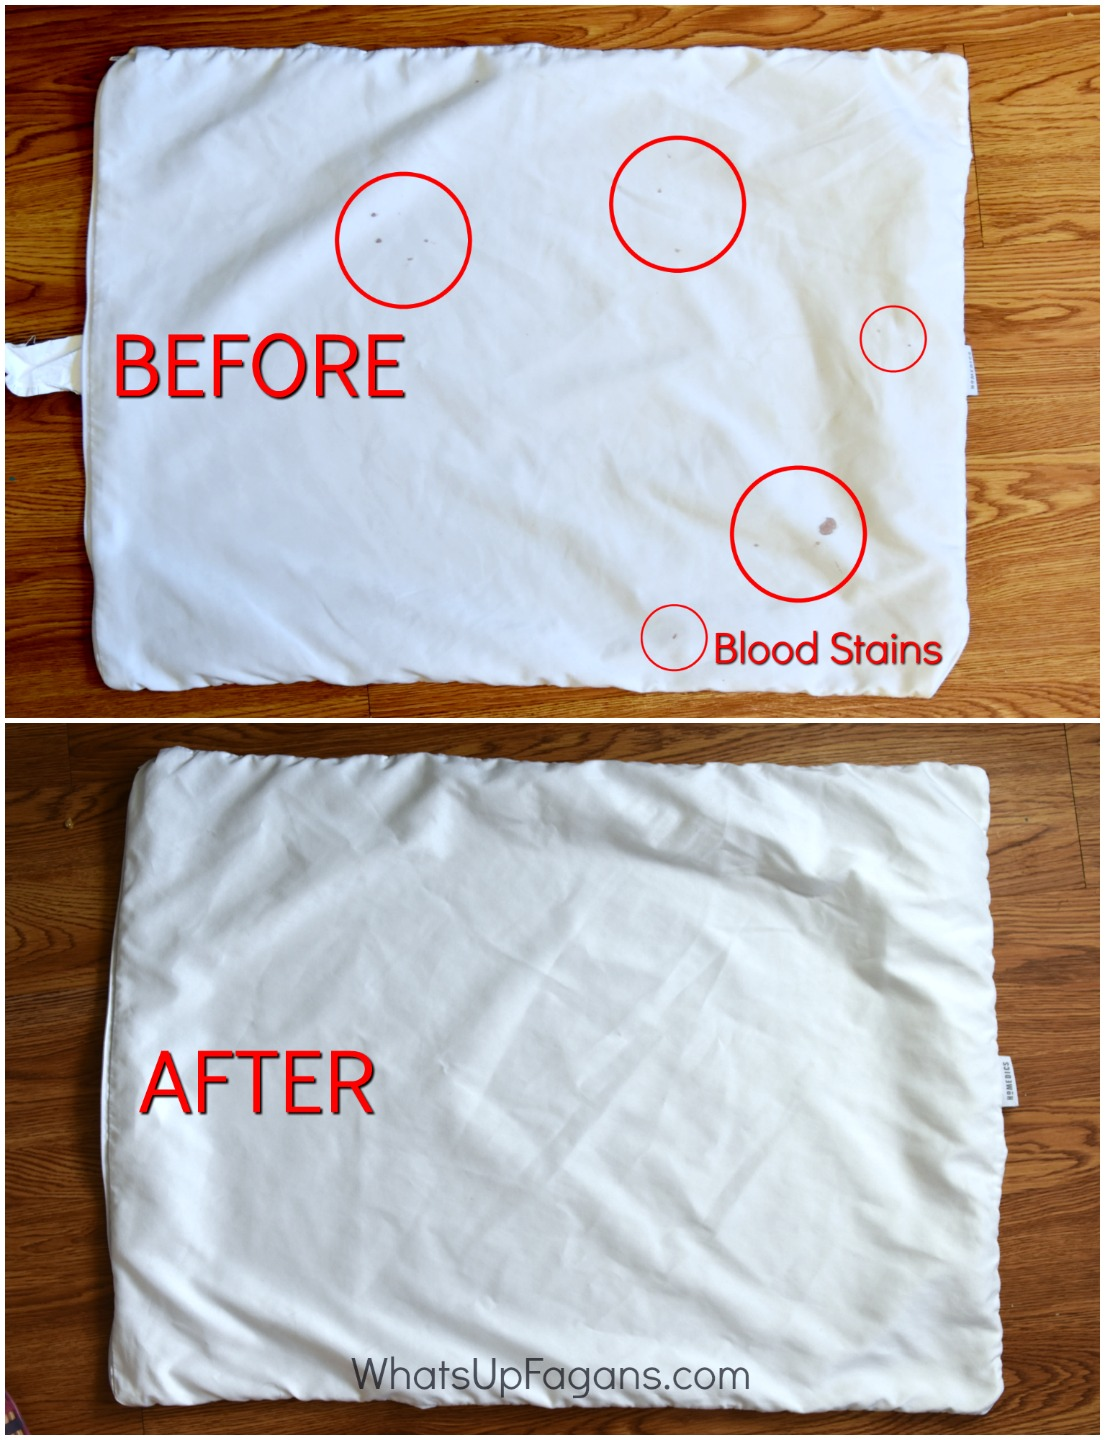 blood stain removal method with ammonia - hot iron laundry stain removal - how to get rid of blood stain on fabric, clothes, sheets, pillow case with ammonia, cleaning tutorial tip